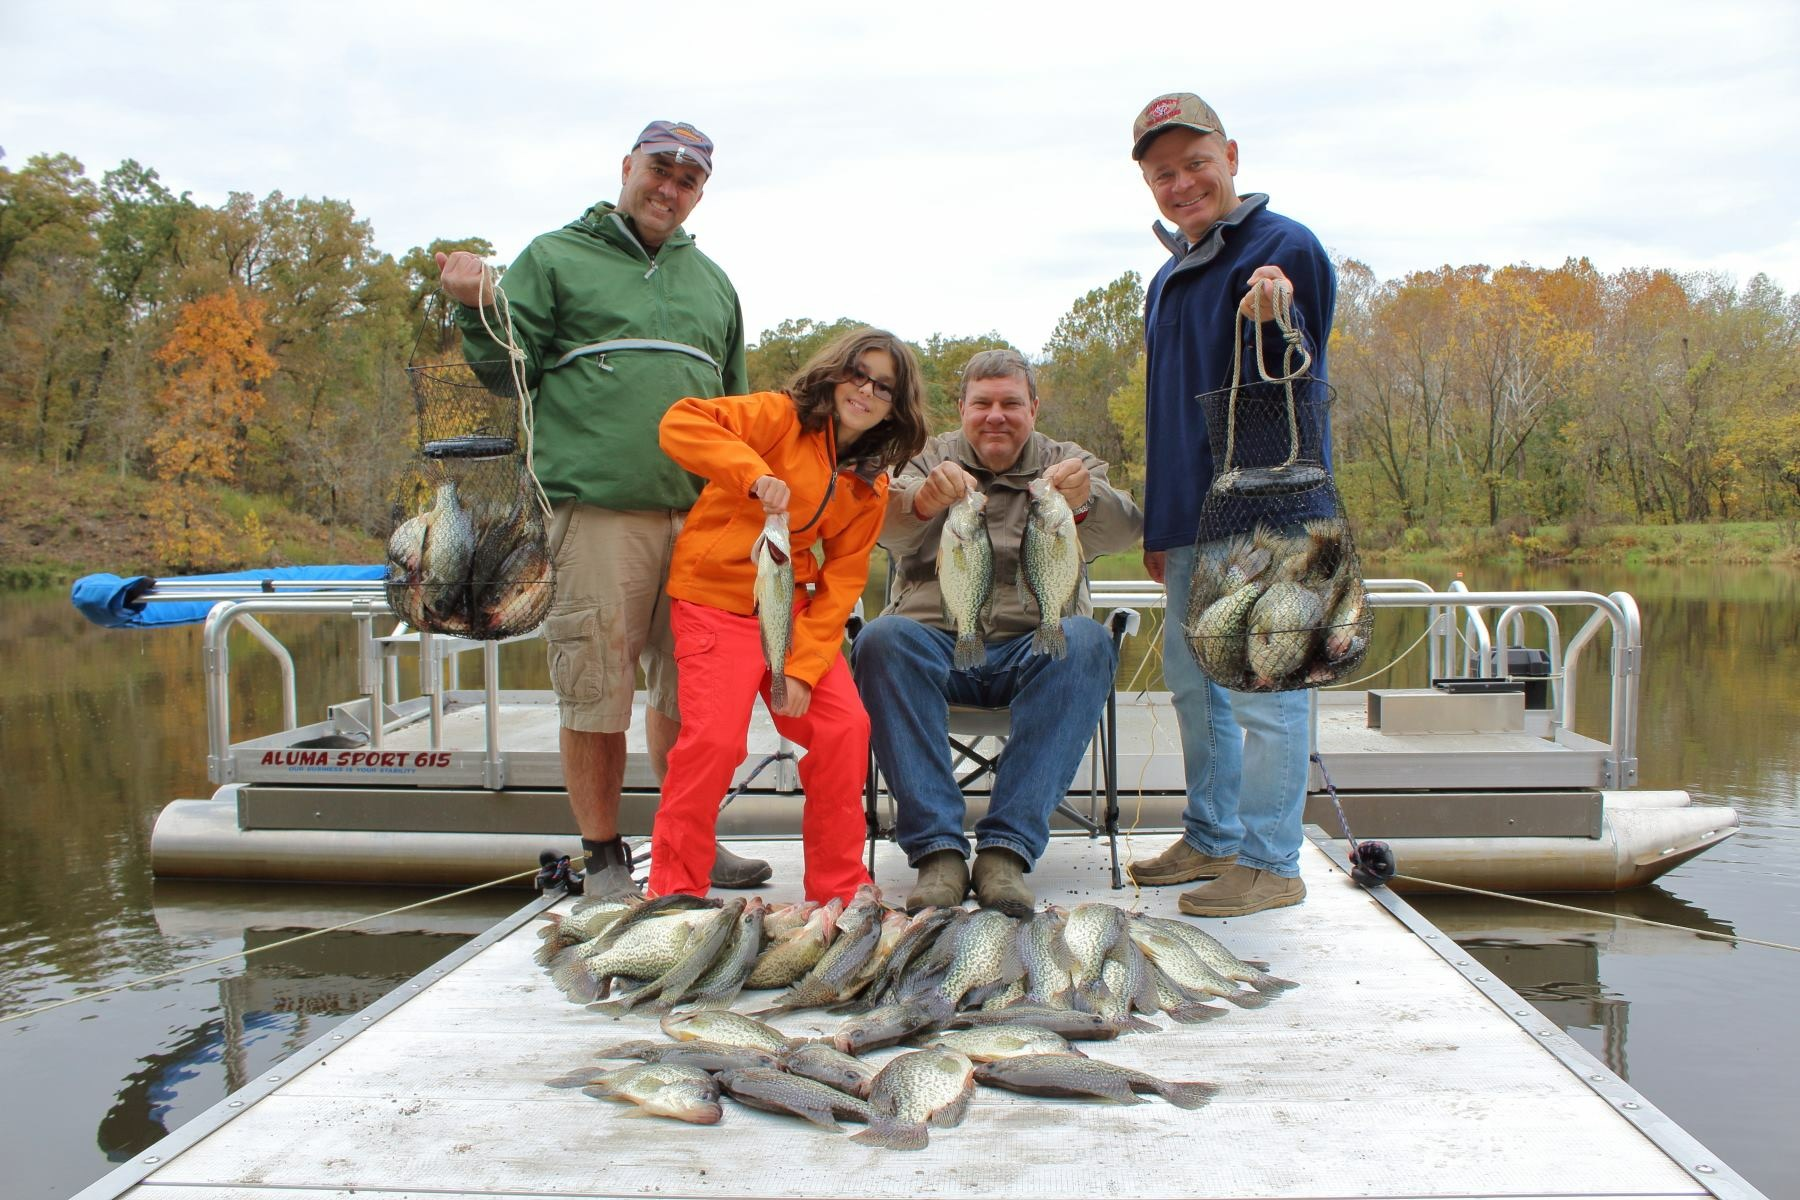 Mahoney Outdoors out of Missouri, uses one of our earlier model 615 Aluma Sport pontoons and also they have a Hotwoods all aluminum dock and walkway. As you see in this photo with these customers they guided, it was a very successful day with 78 crappie brought in. They released many back that were not kept.  Like we are always telling our customers, fishing from a Hotwoods pontoon boat is like standing on the water with the low profile we give you with our design.  This was a great day on the lake. You might want to get ahold of these guys if you want to get some real action with crappie in Missouri.